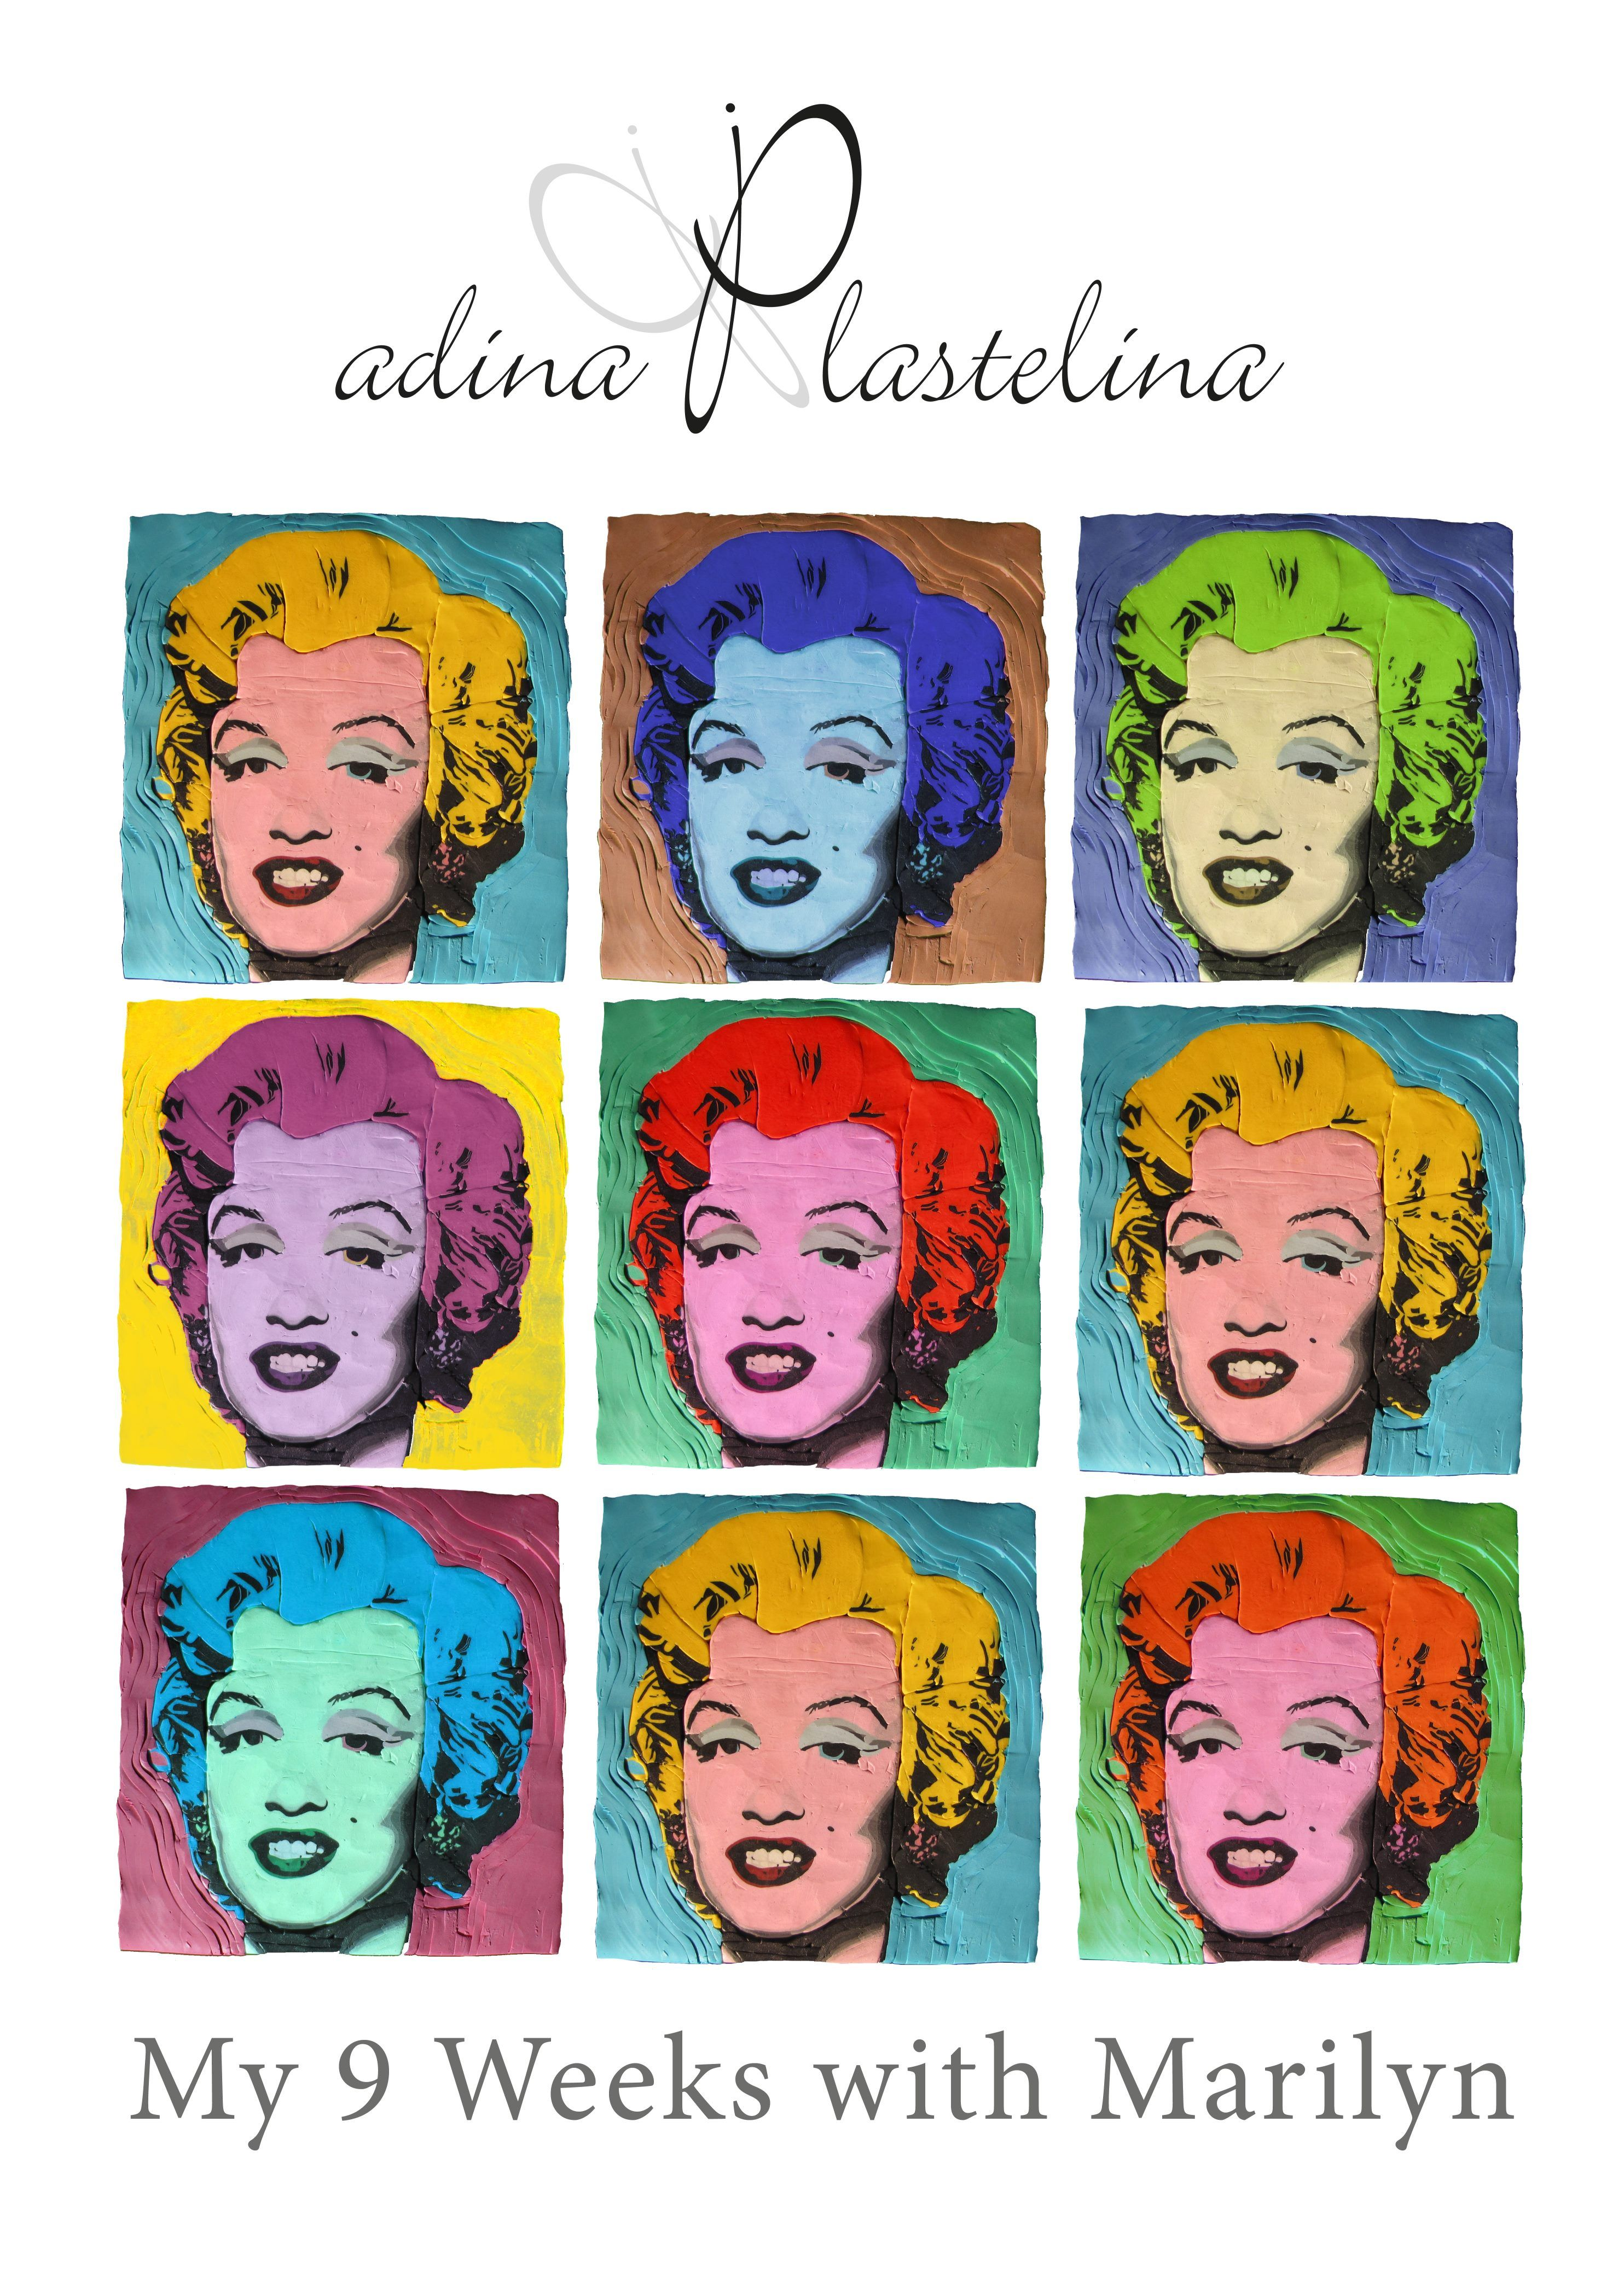 Our tribute to Marilyn Monroe and Andy Warhol. Do not miss the amazing video!!! thehttp://www.youtube.com/watch?v=bPfOP-f2BI4